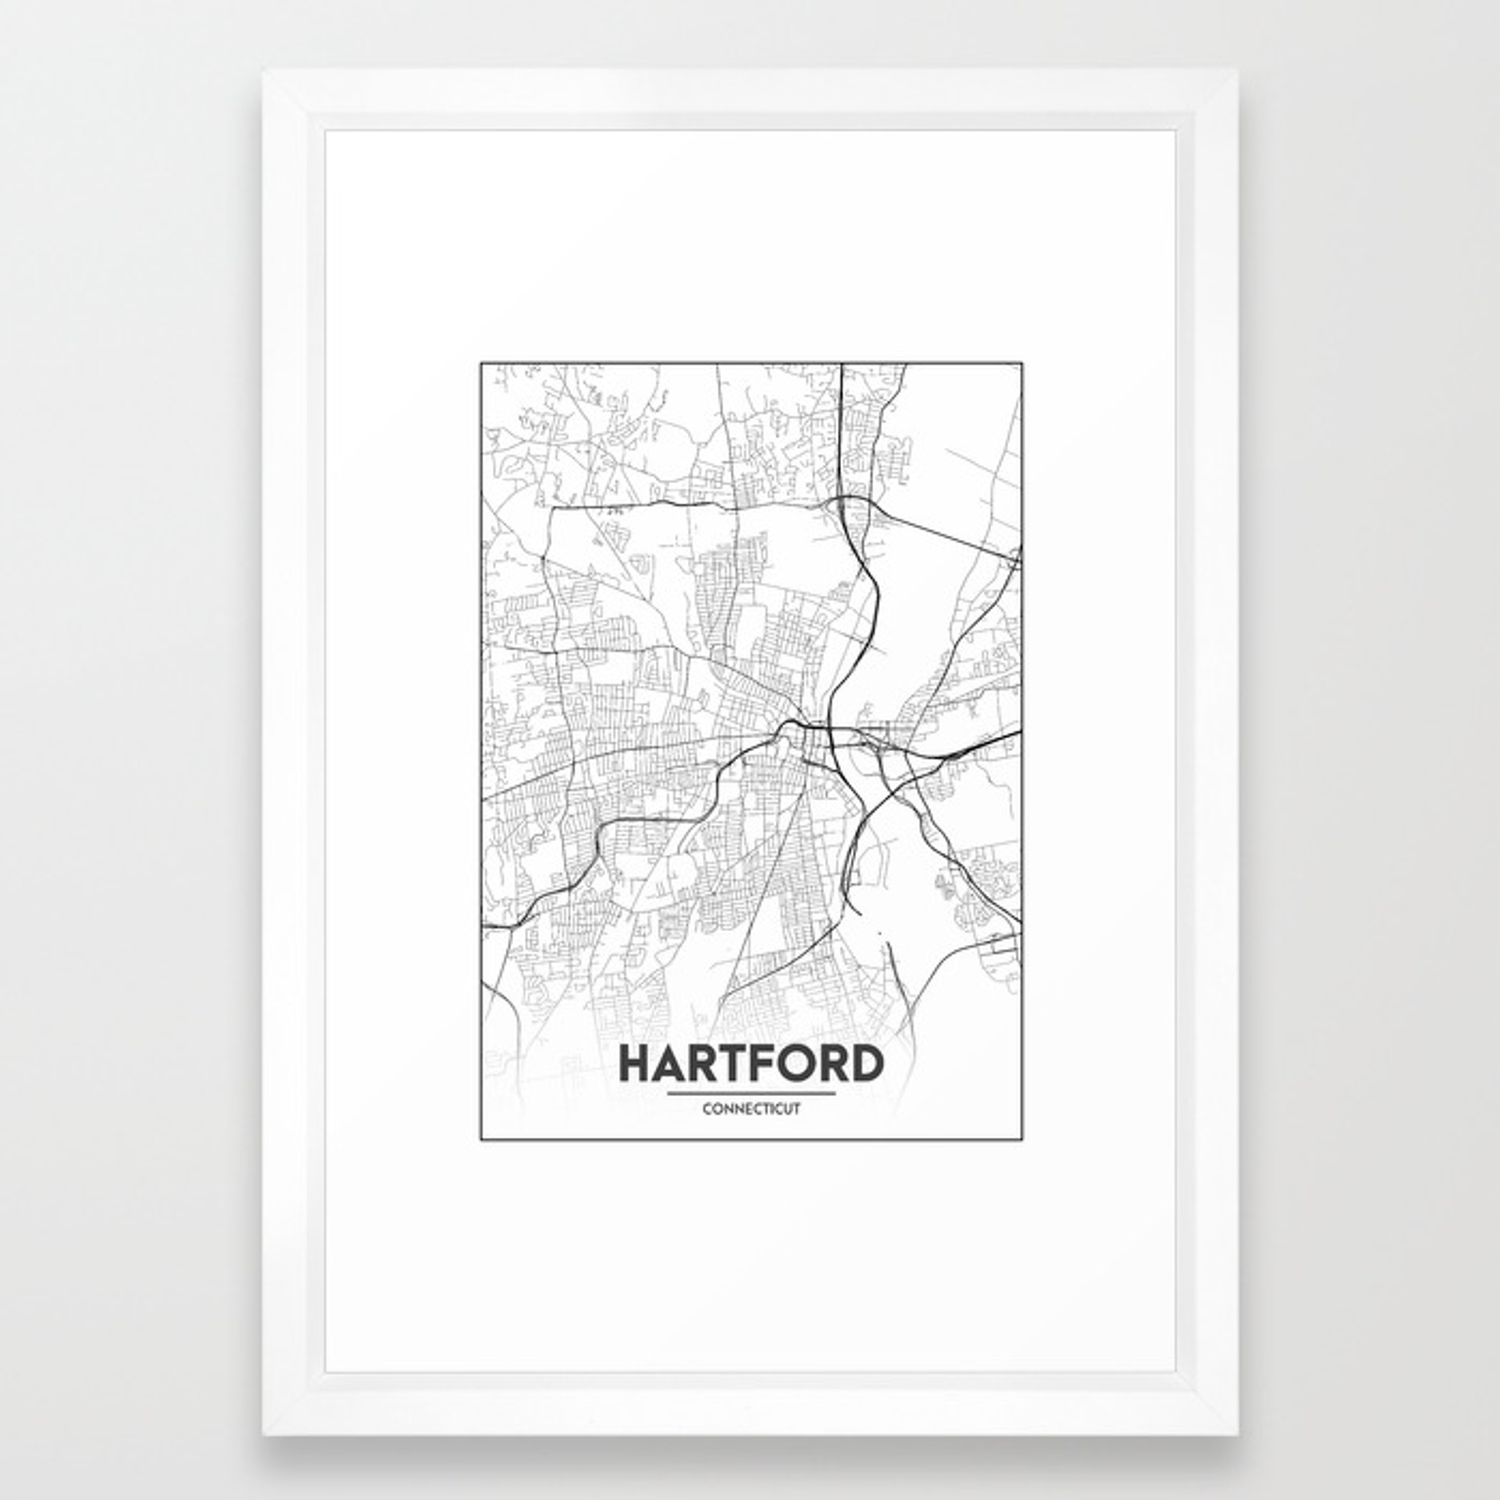 Minimal City Maps - Map Of Hartford, Connecticut, United States Framed Art  Print